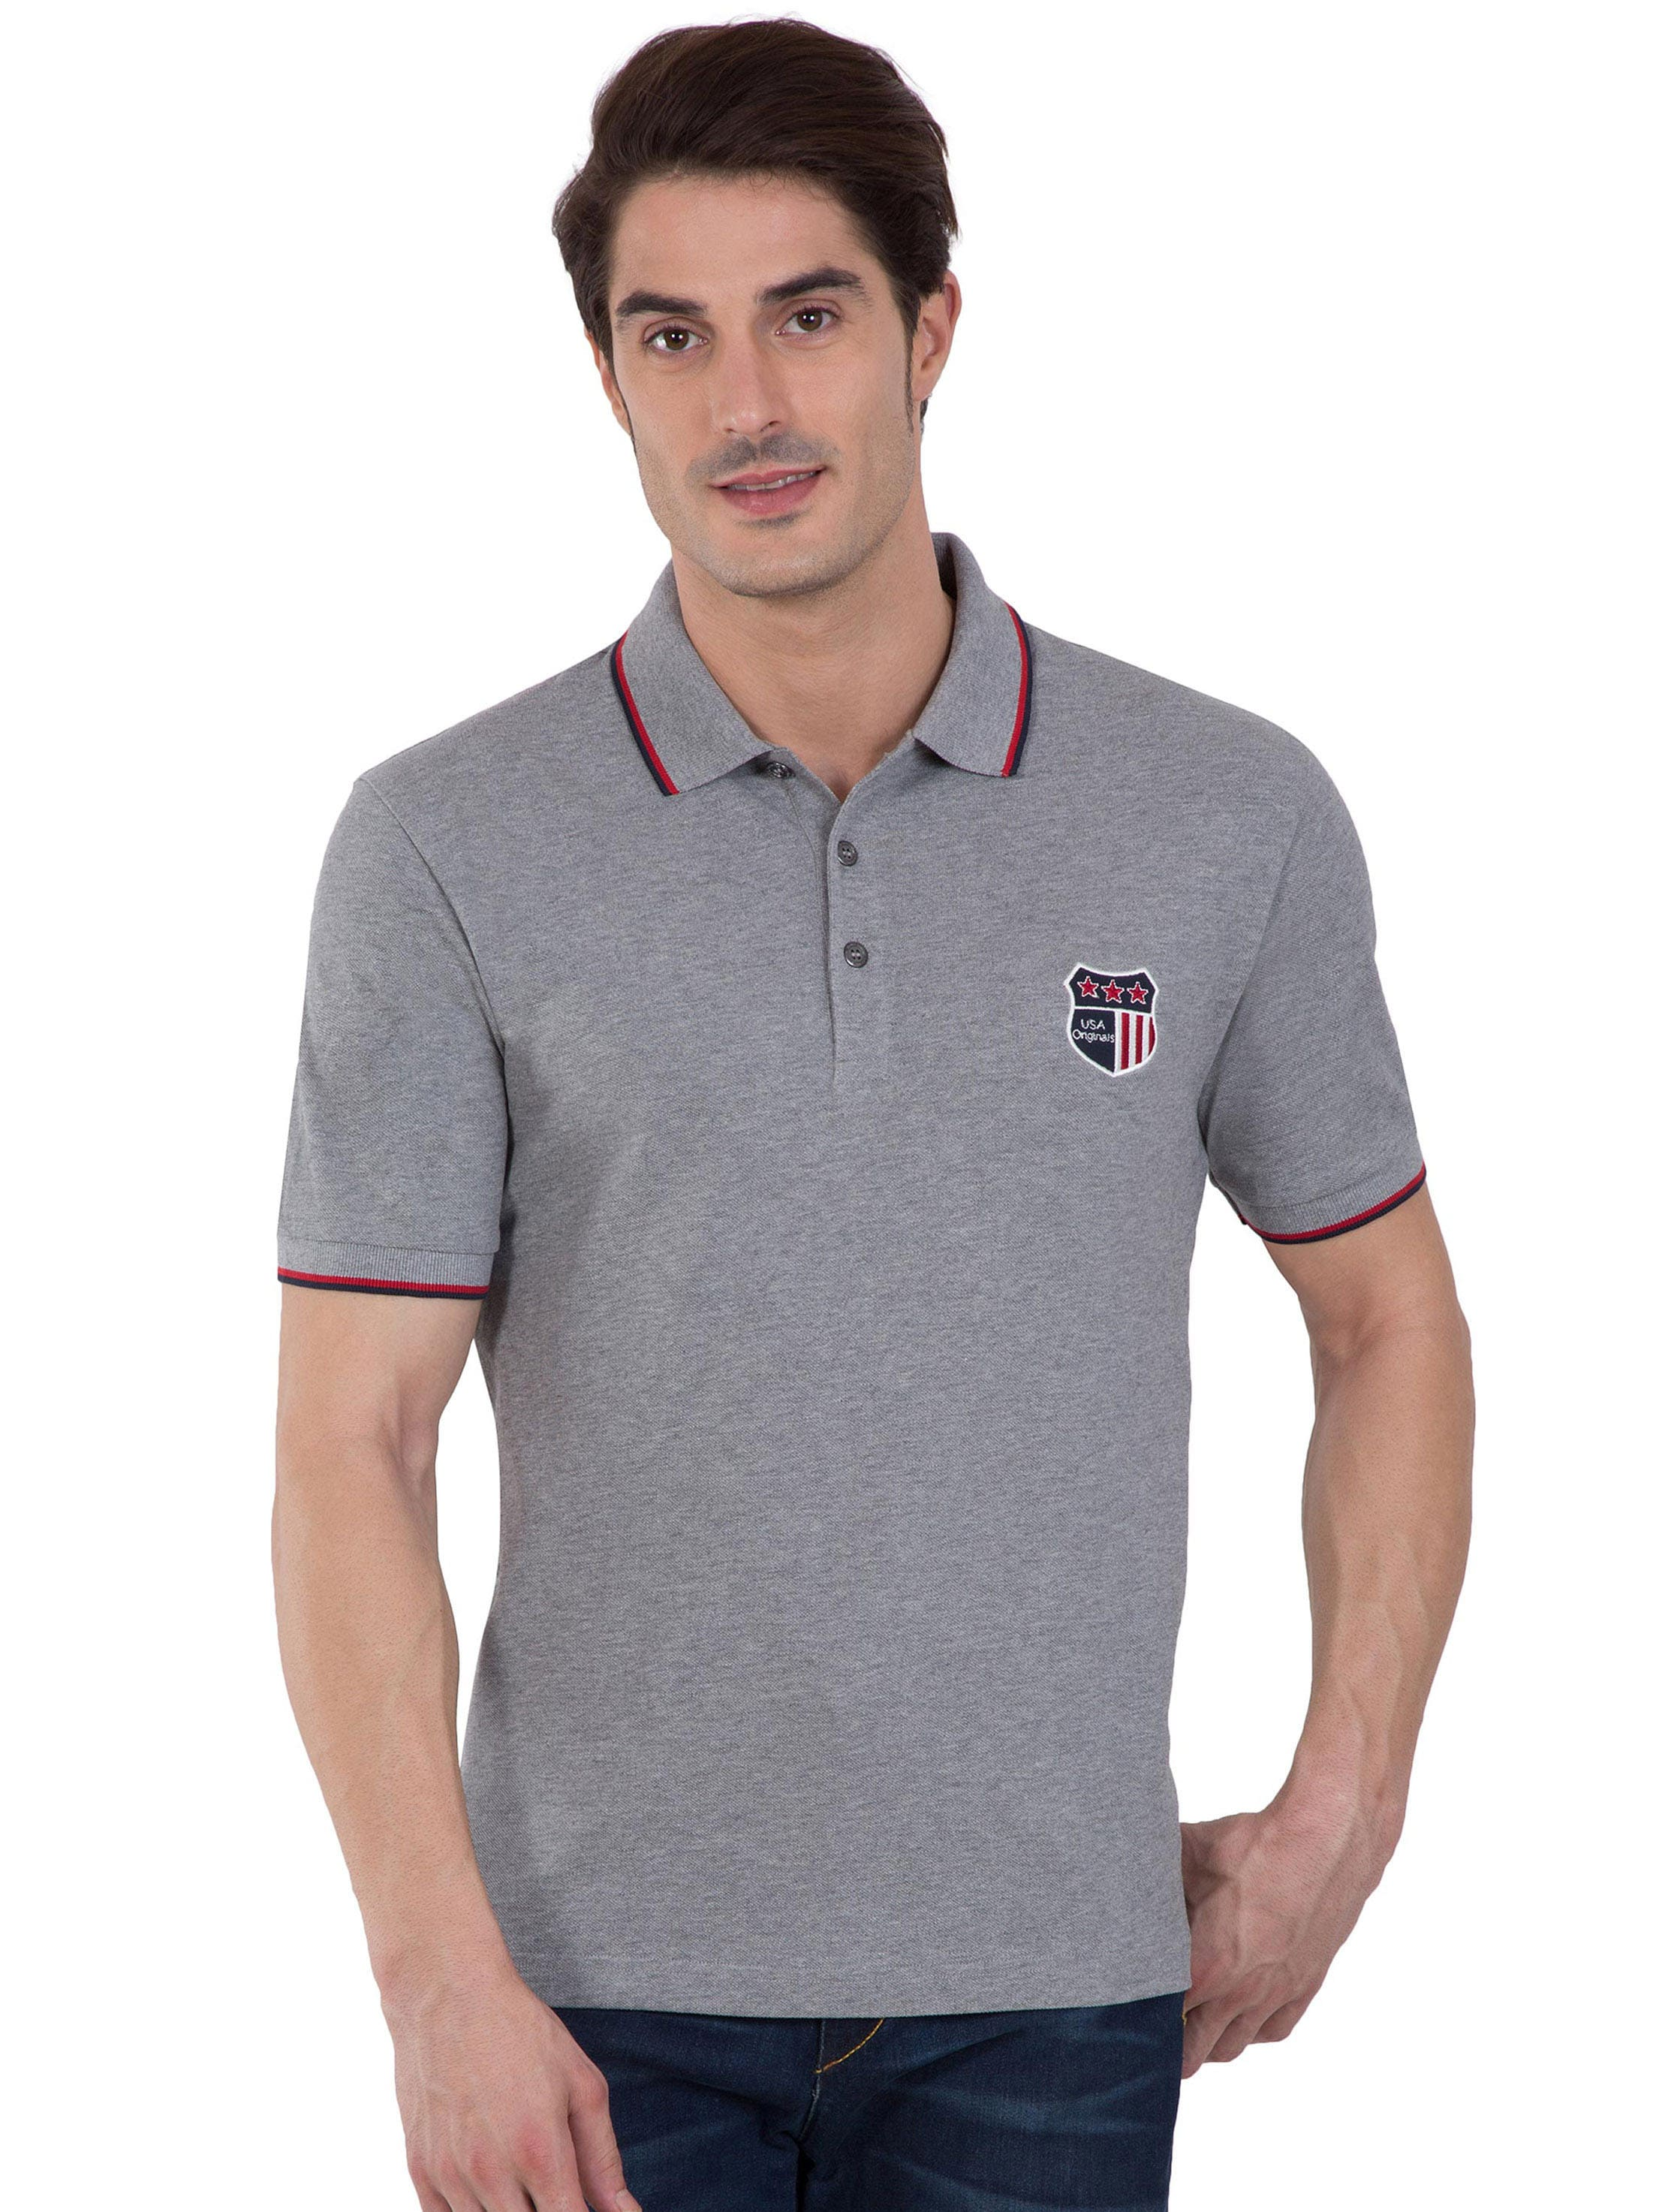 9666ed8d Jockey Men Topwear - Buy Jockey Men Topwear online in India